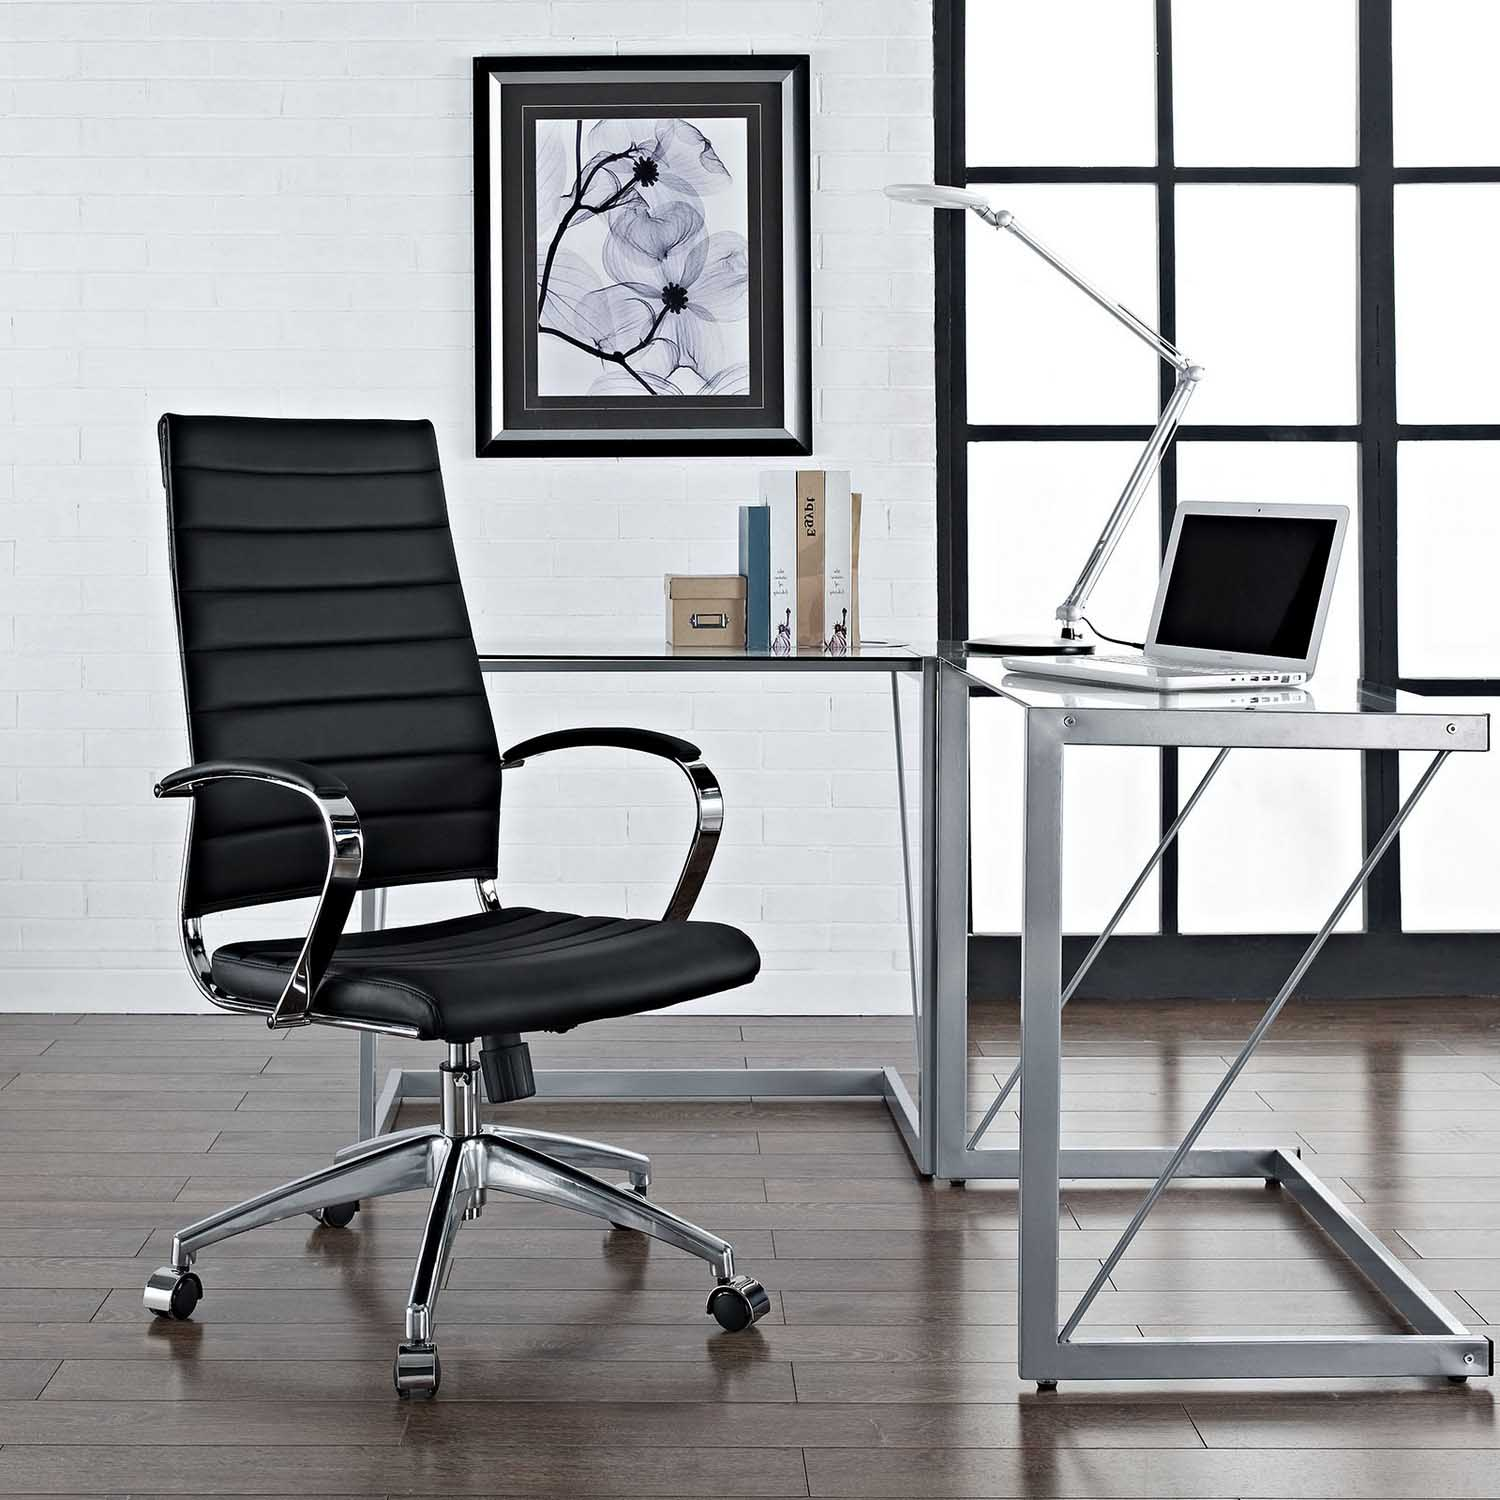 office chair black eei studio the designs blk modway home depot chairs